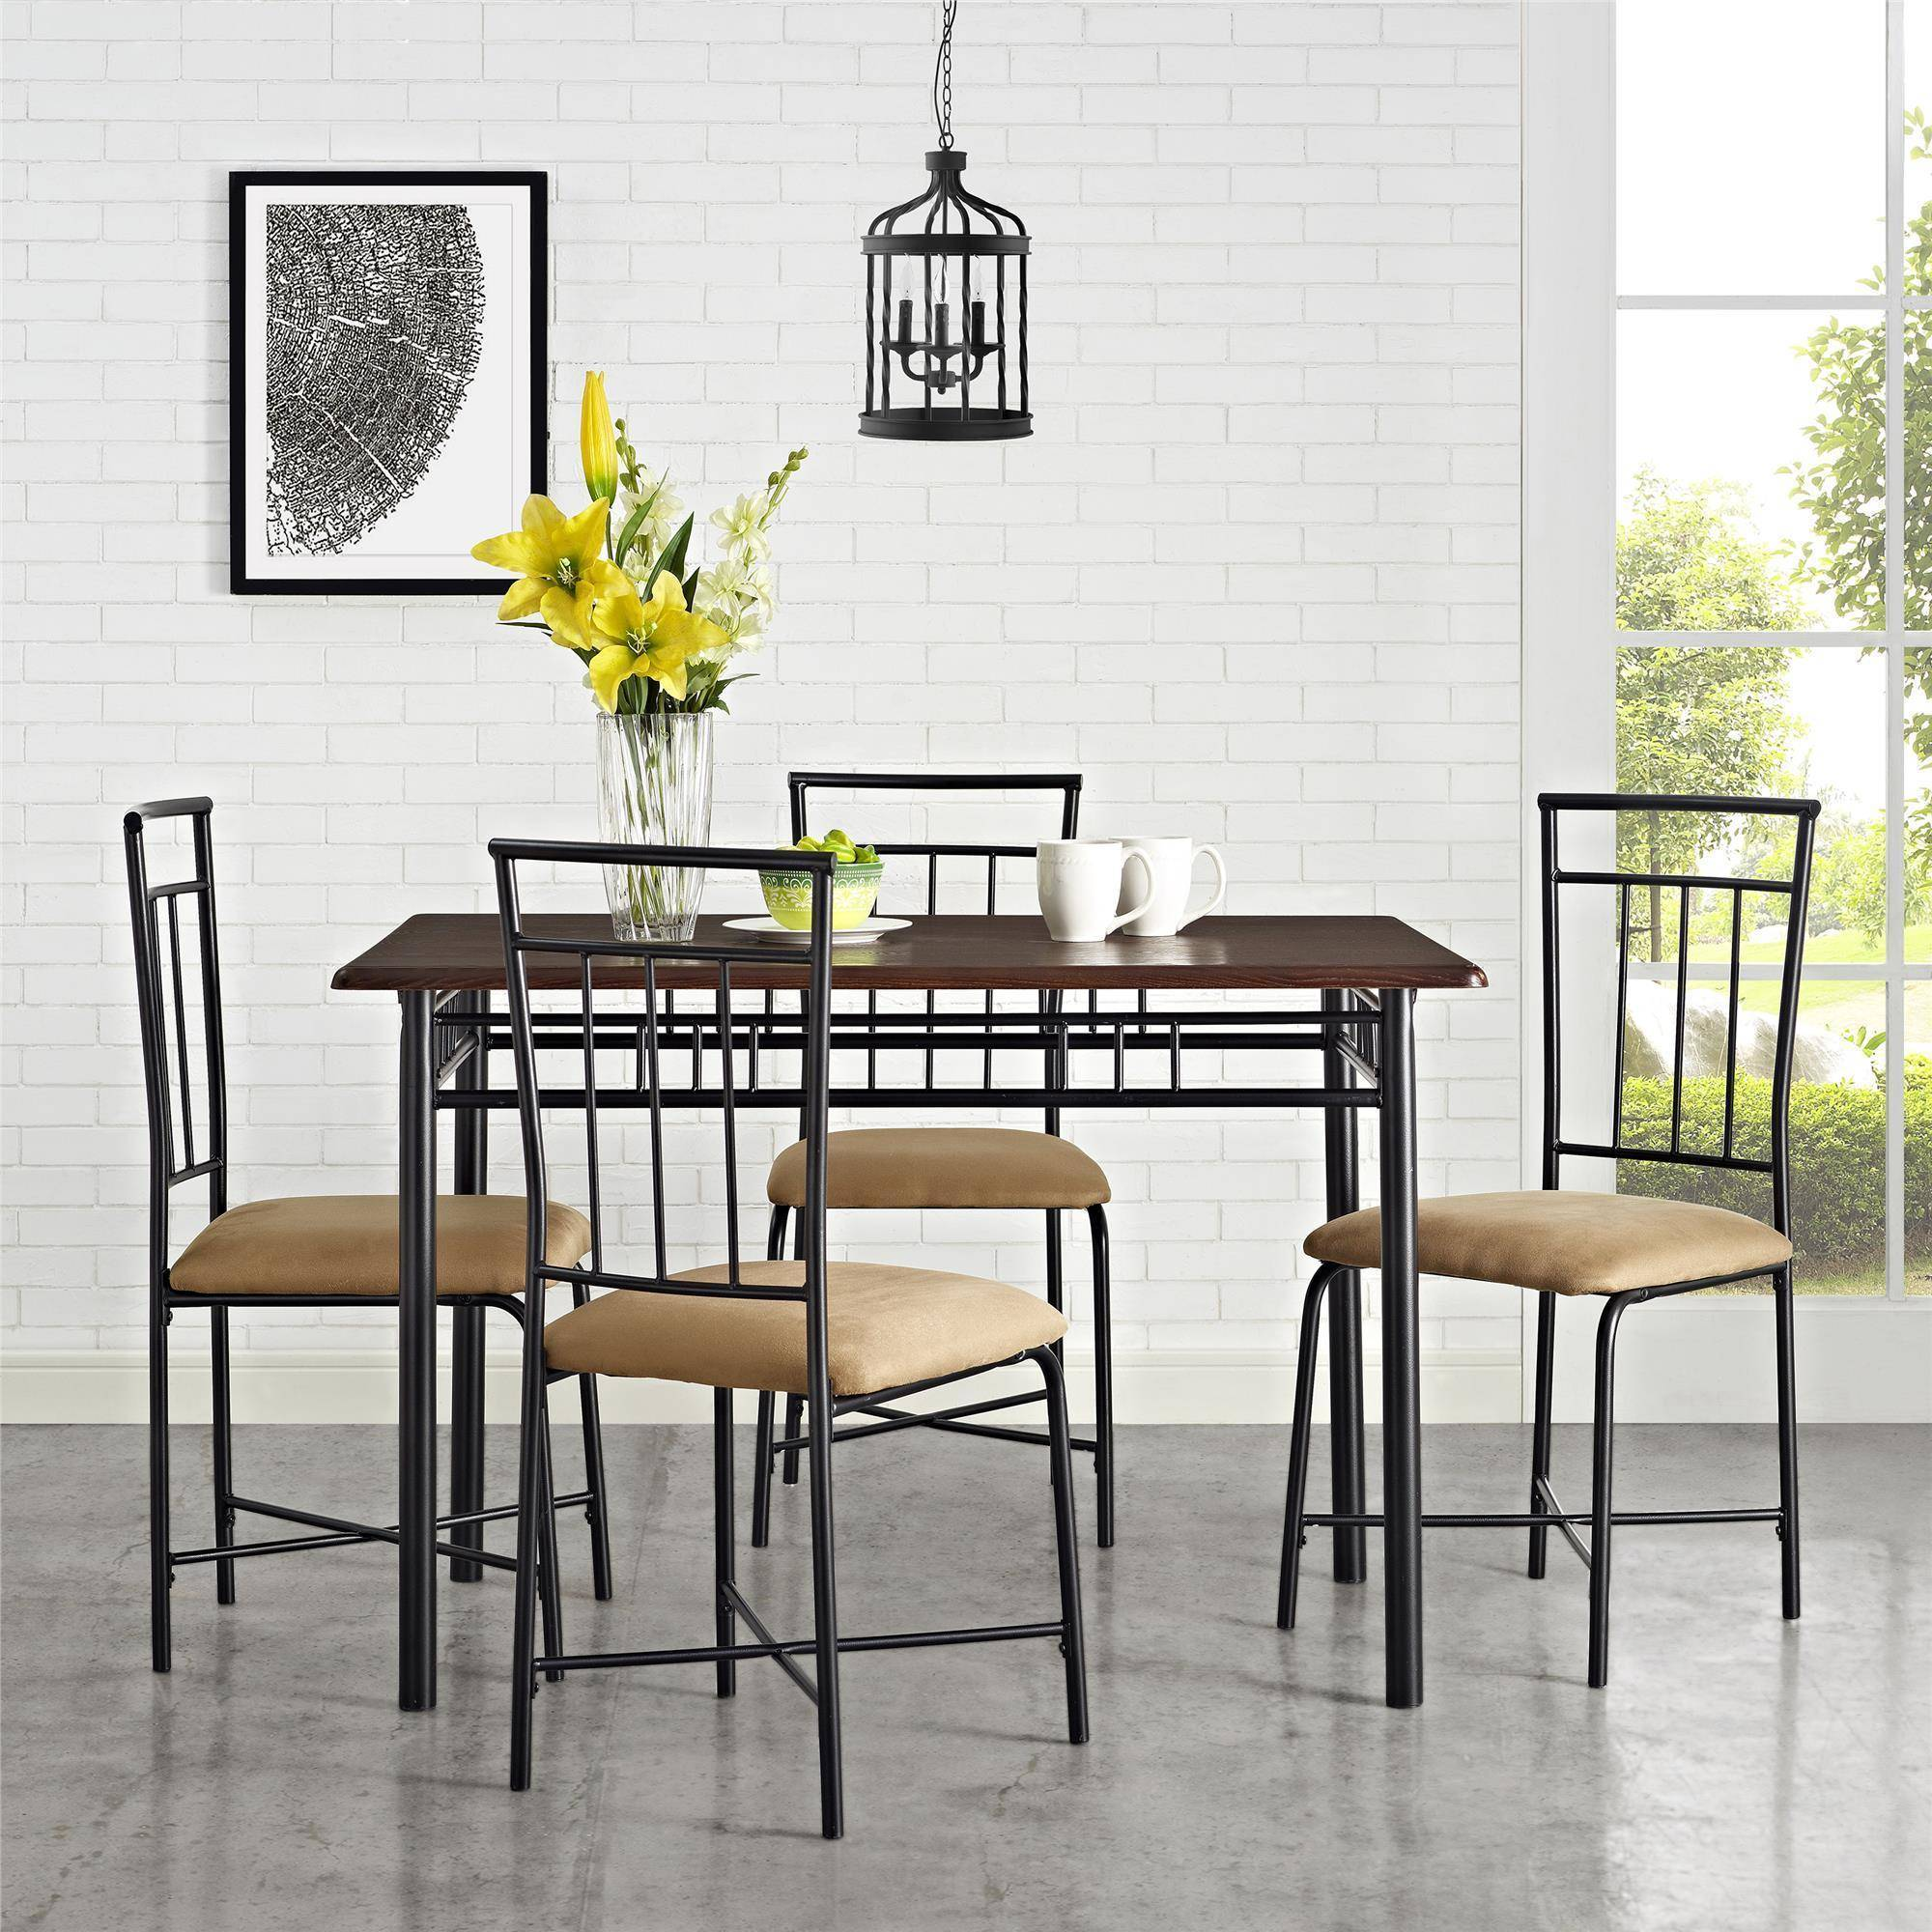 Delicieux Mainstays 5 Piece Dining Set, Multiple Colors